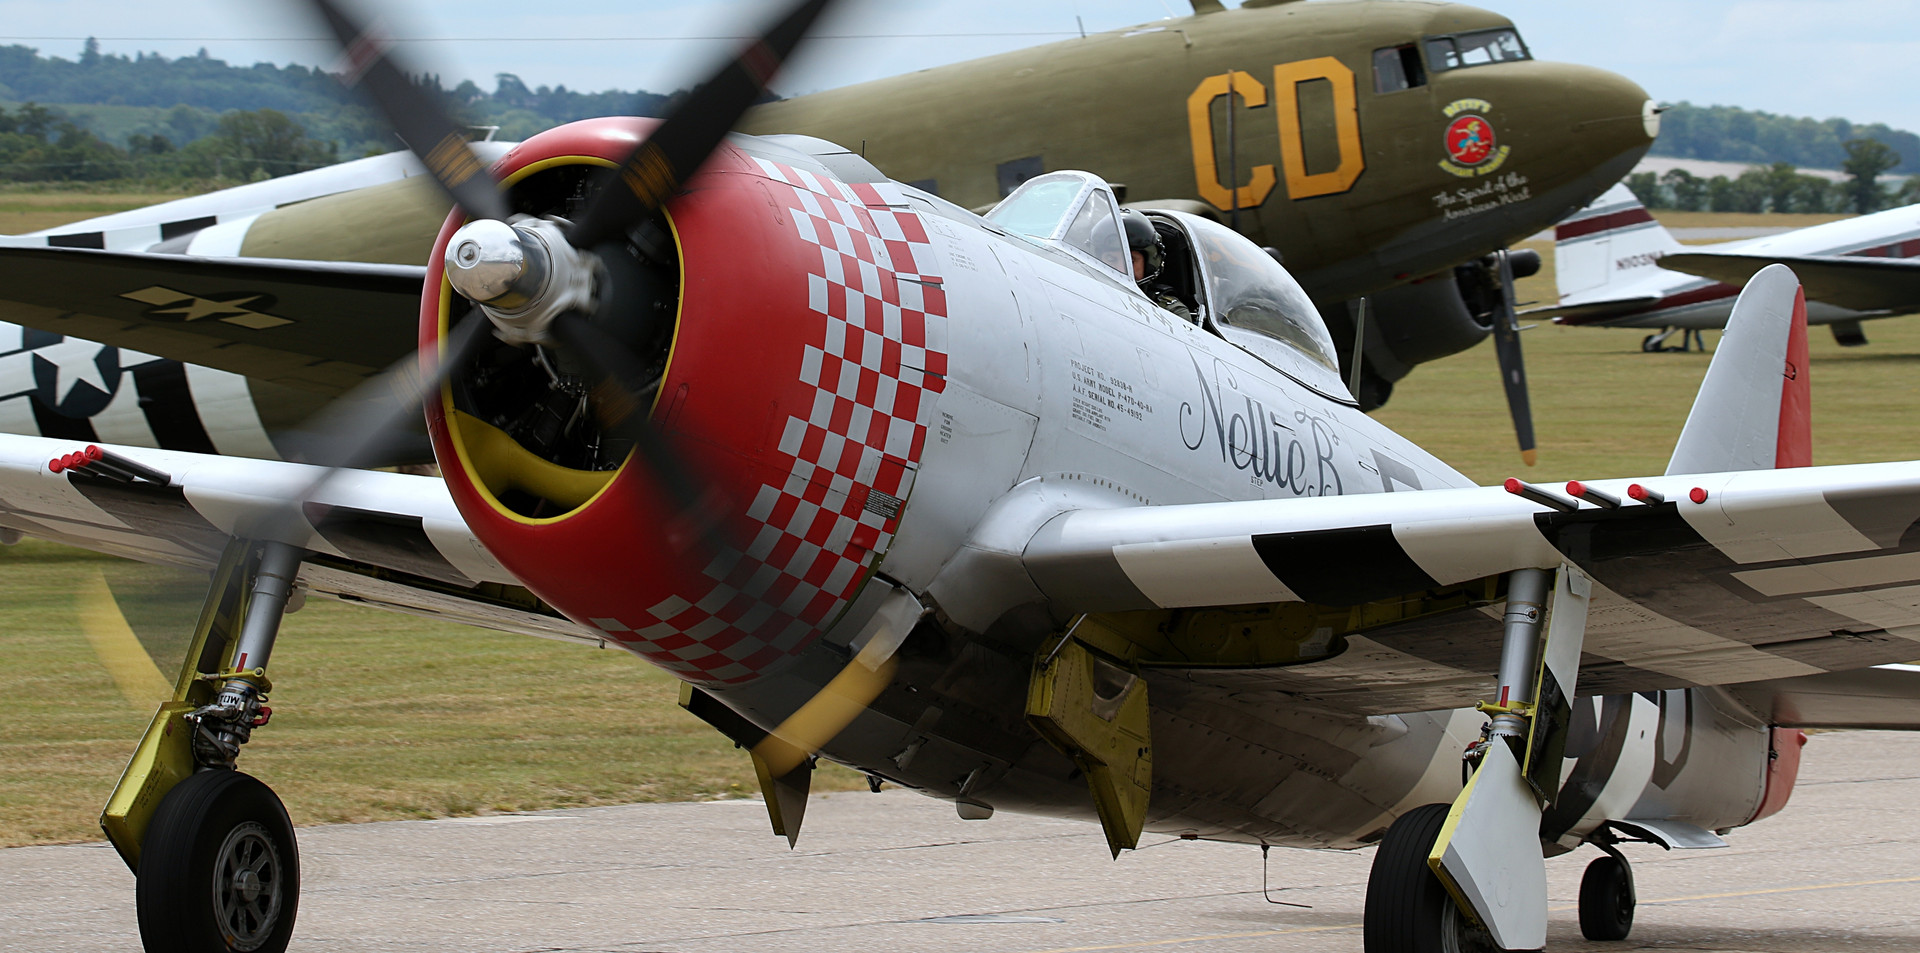 P-47 Thunderbolt Daks over Duxford June